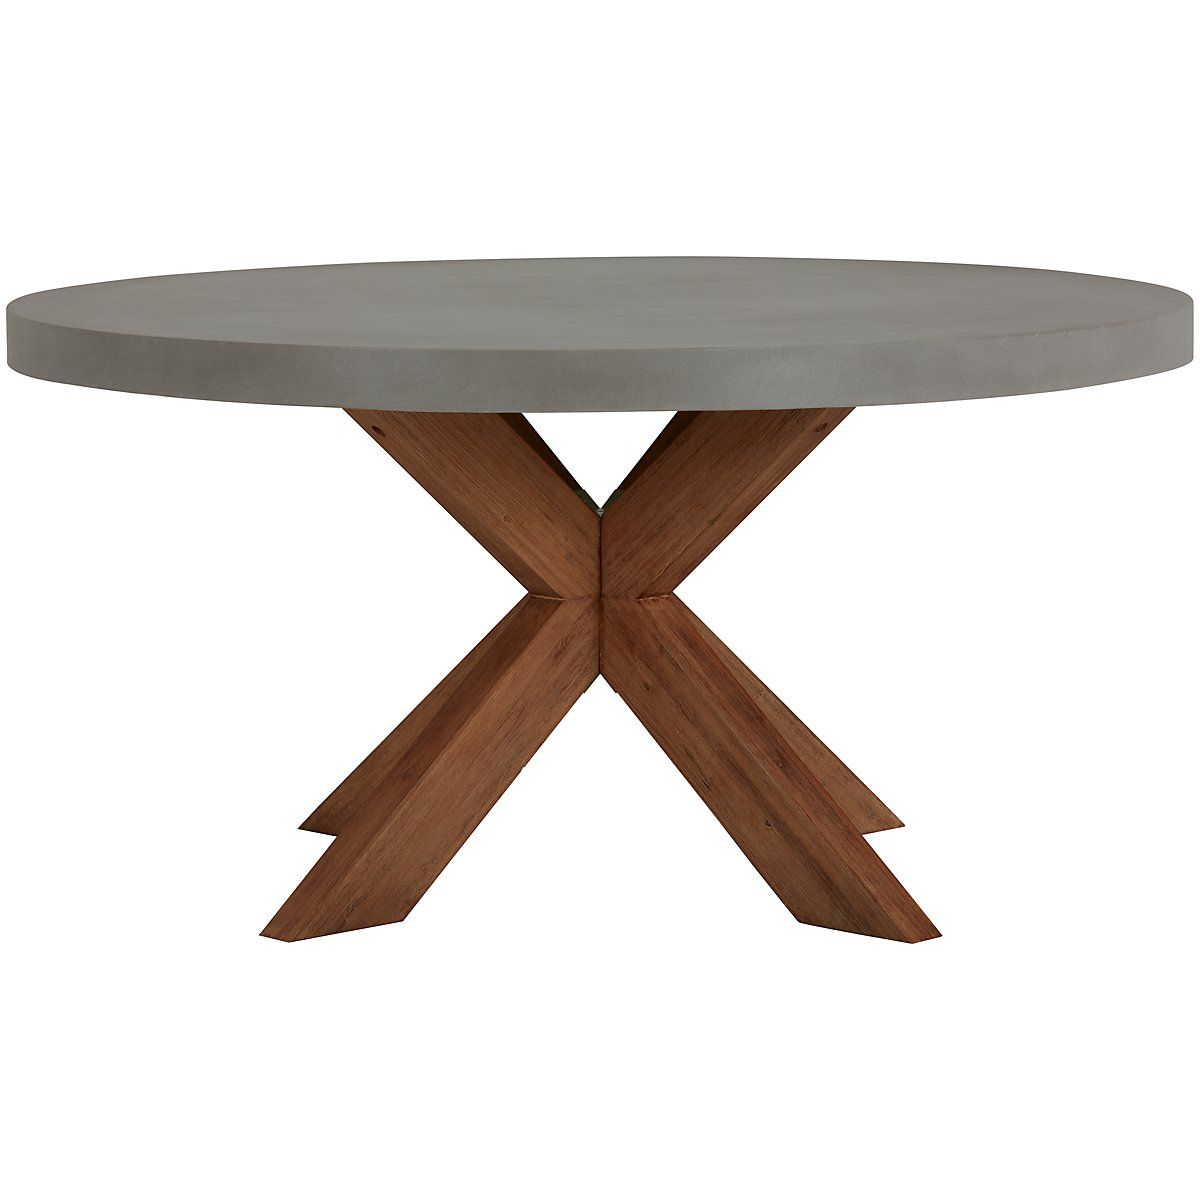 Canyon Fiberstone 60 Round Table Concrete Dining Table Round